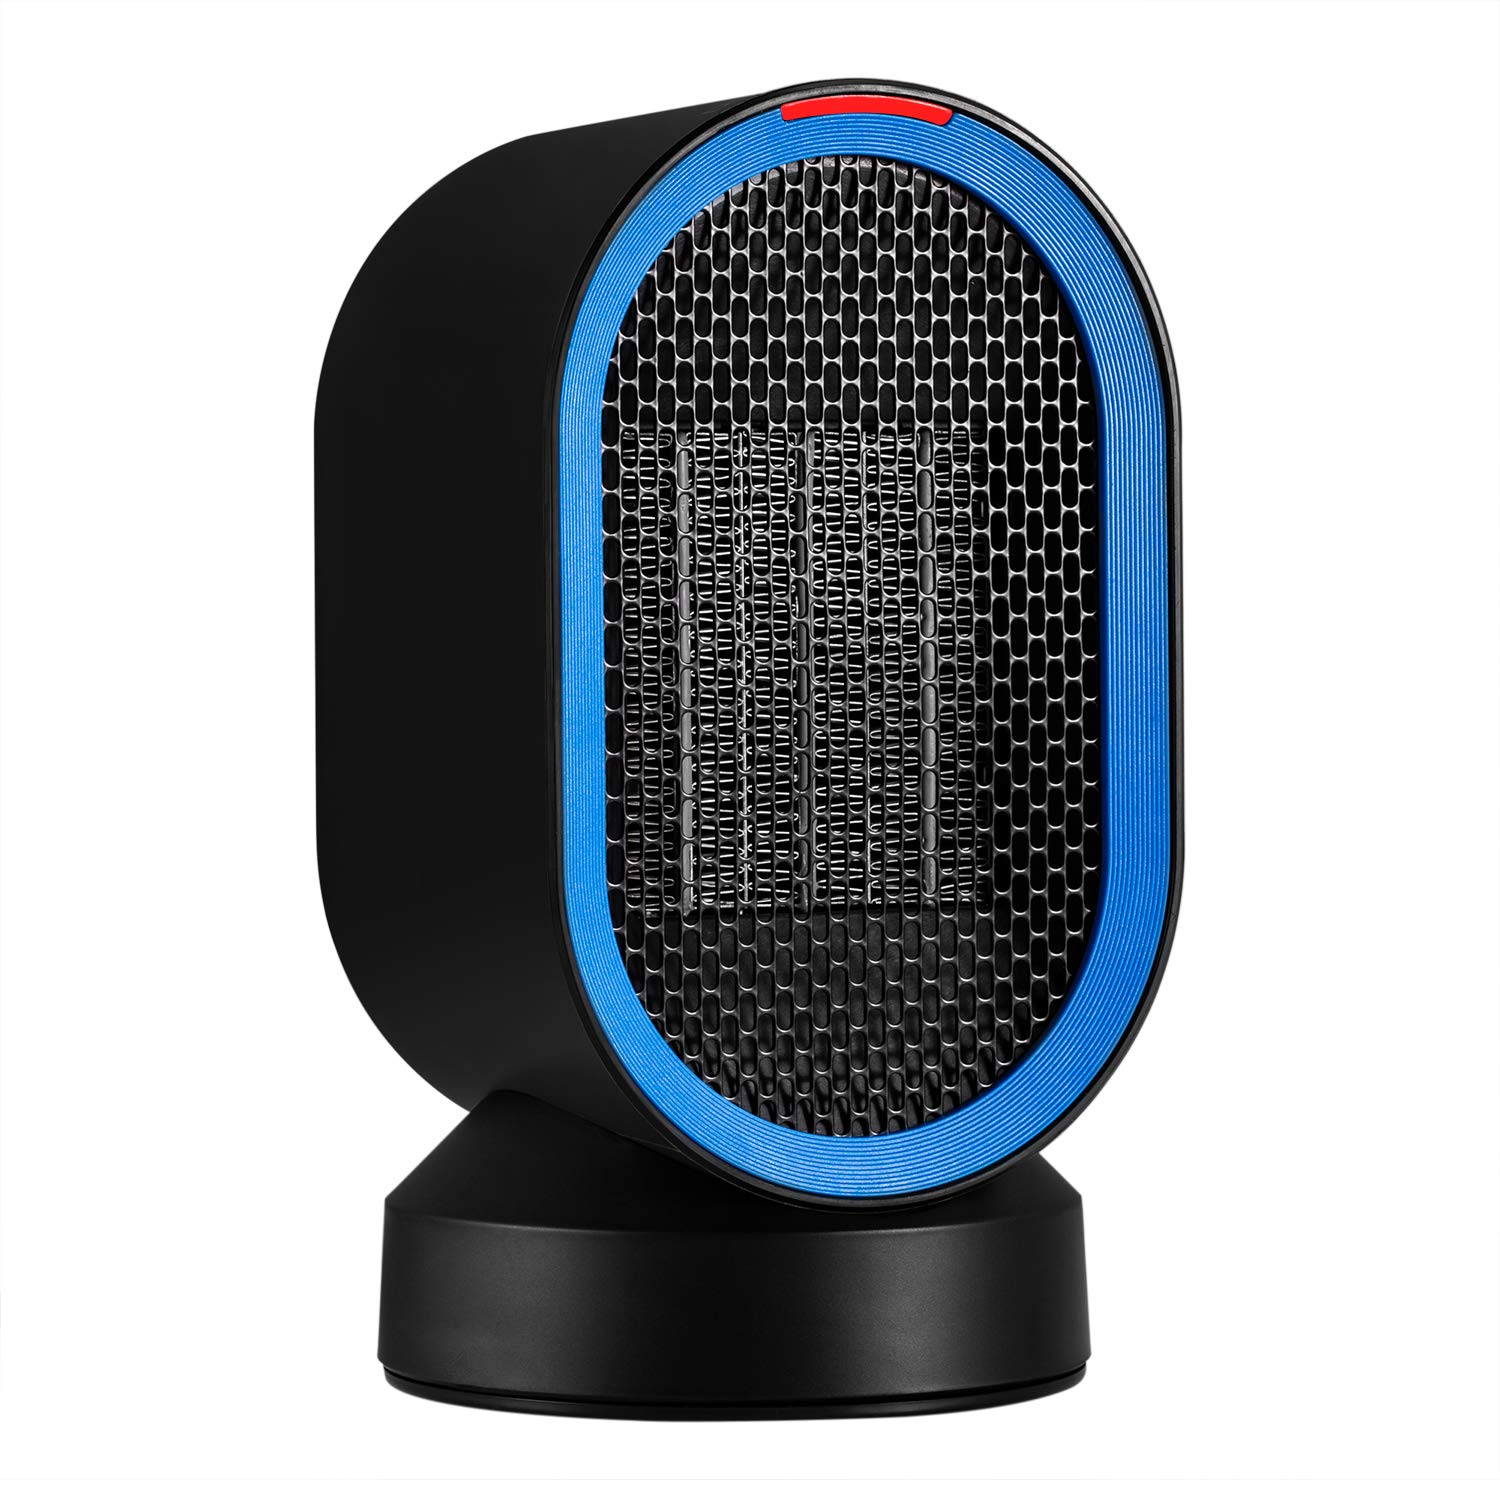 AIVANT Auto Oscillating Heater 600W PTC Handy Ceramic Heater Portable Electric Heater Home Office Fan Heater Desktop Space Warmer for Winter (Blue)